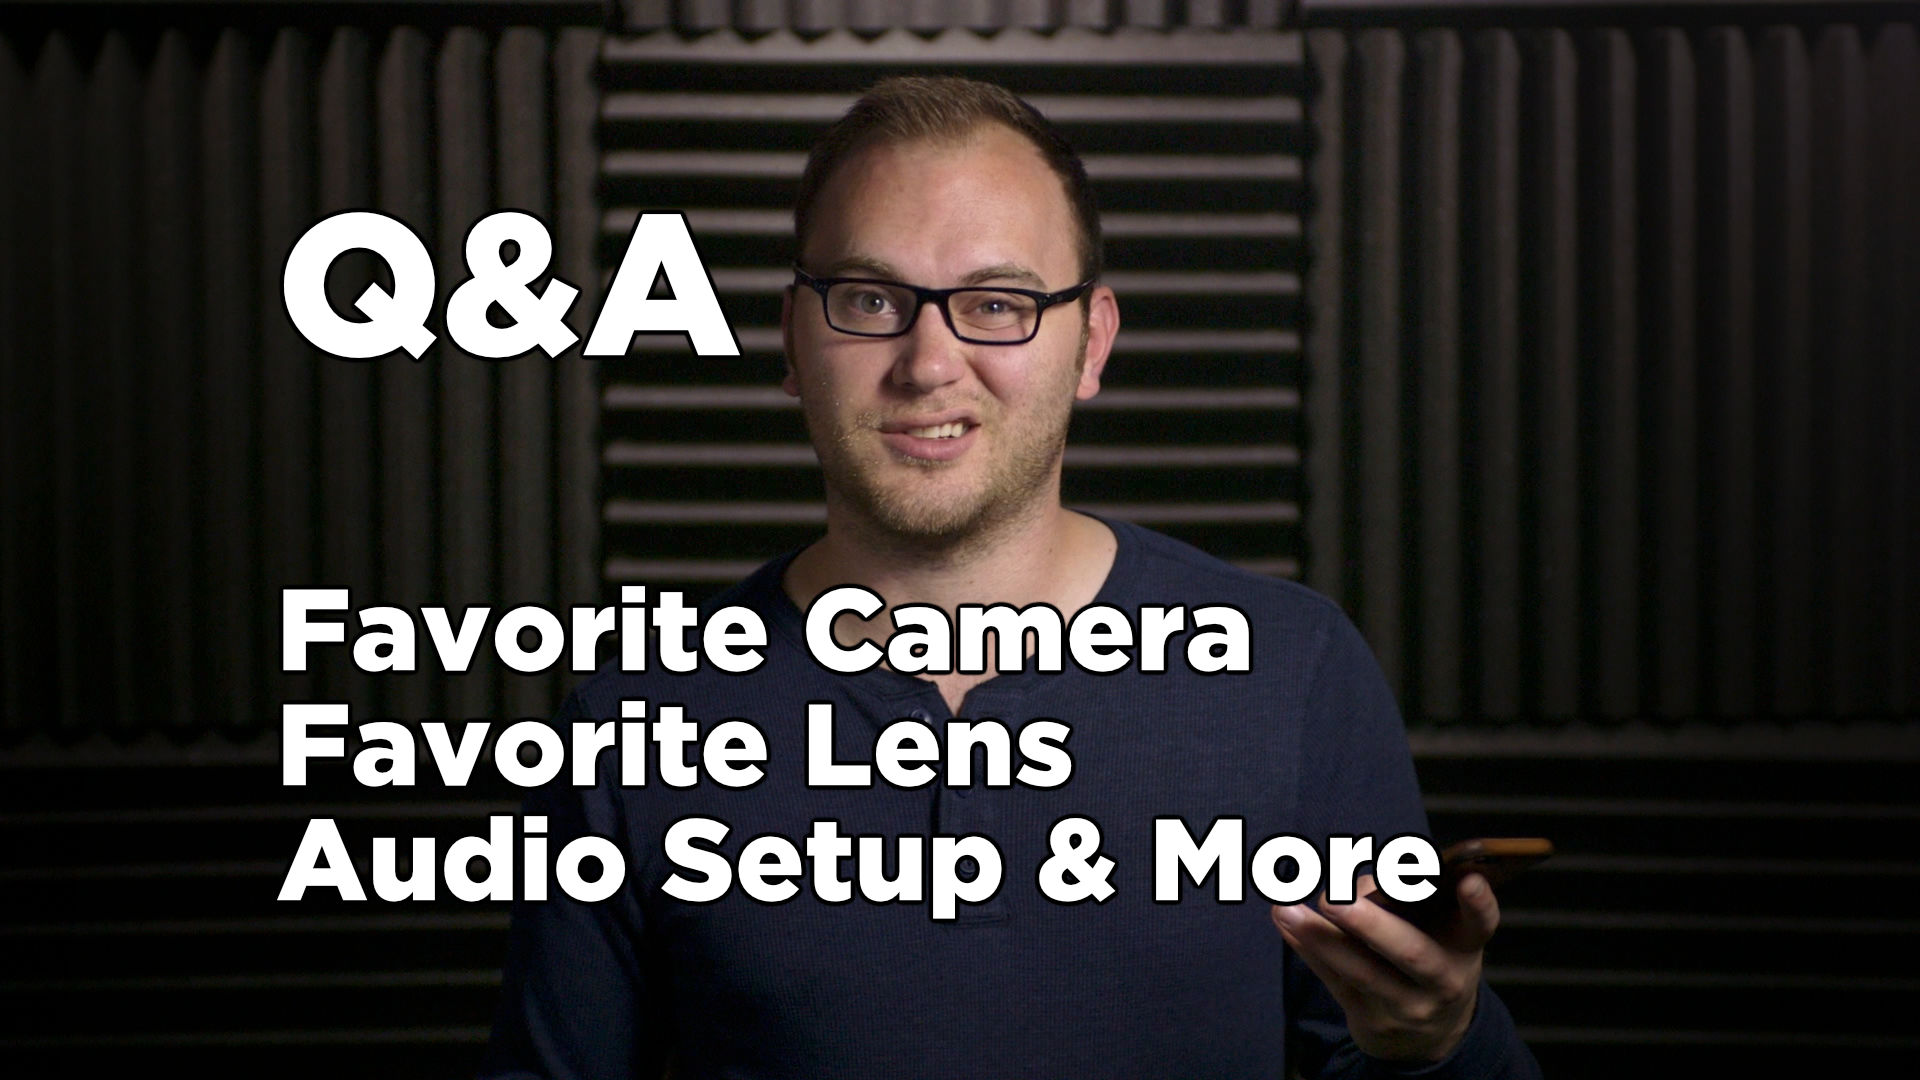 Q&A: Favorite Camera, Lens, Audio Setup and More